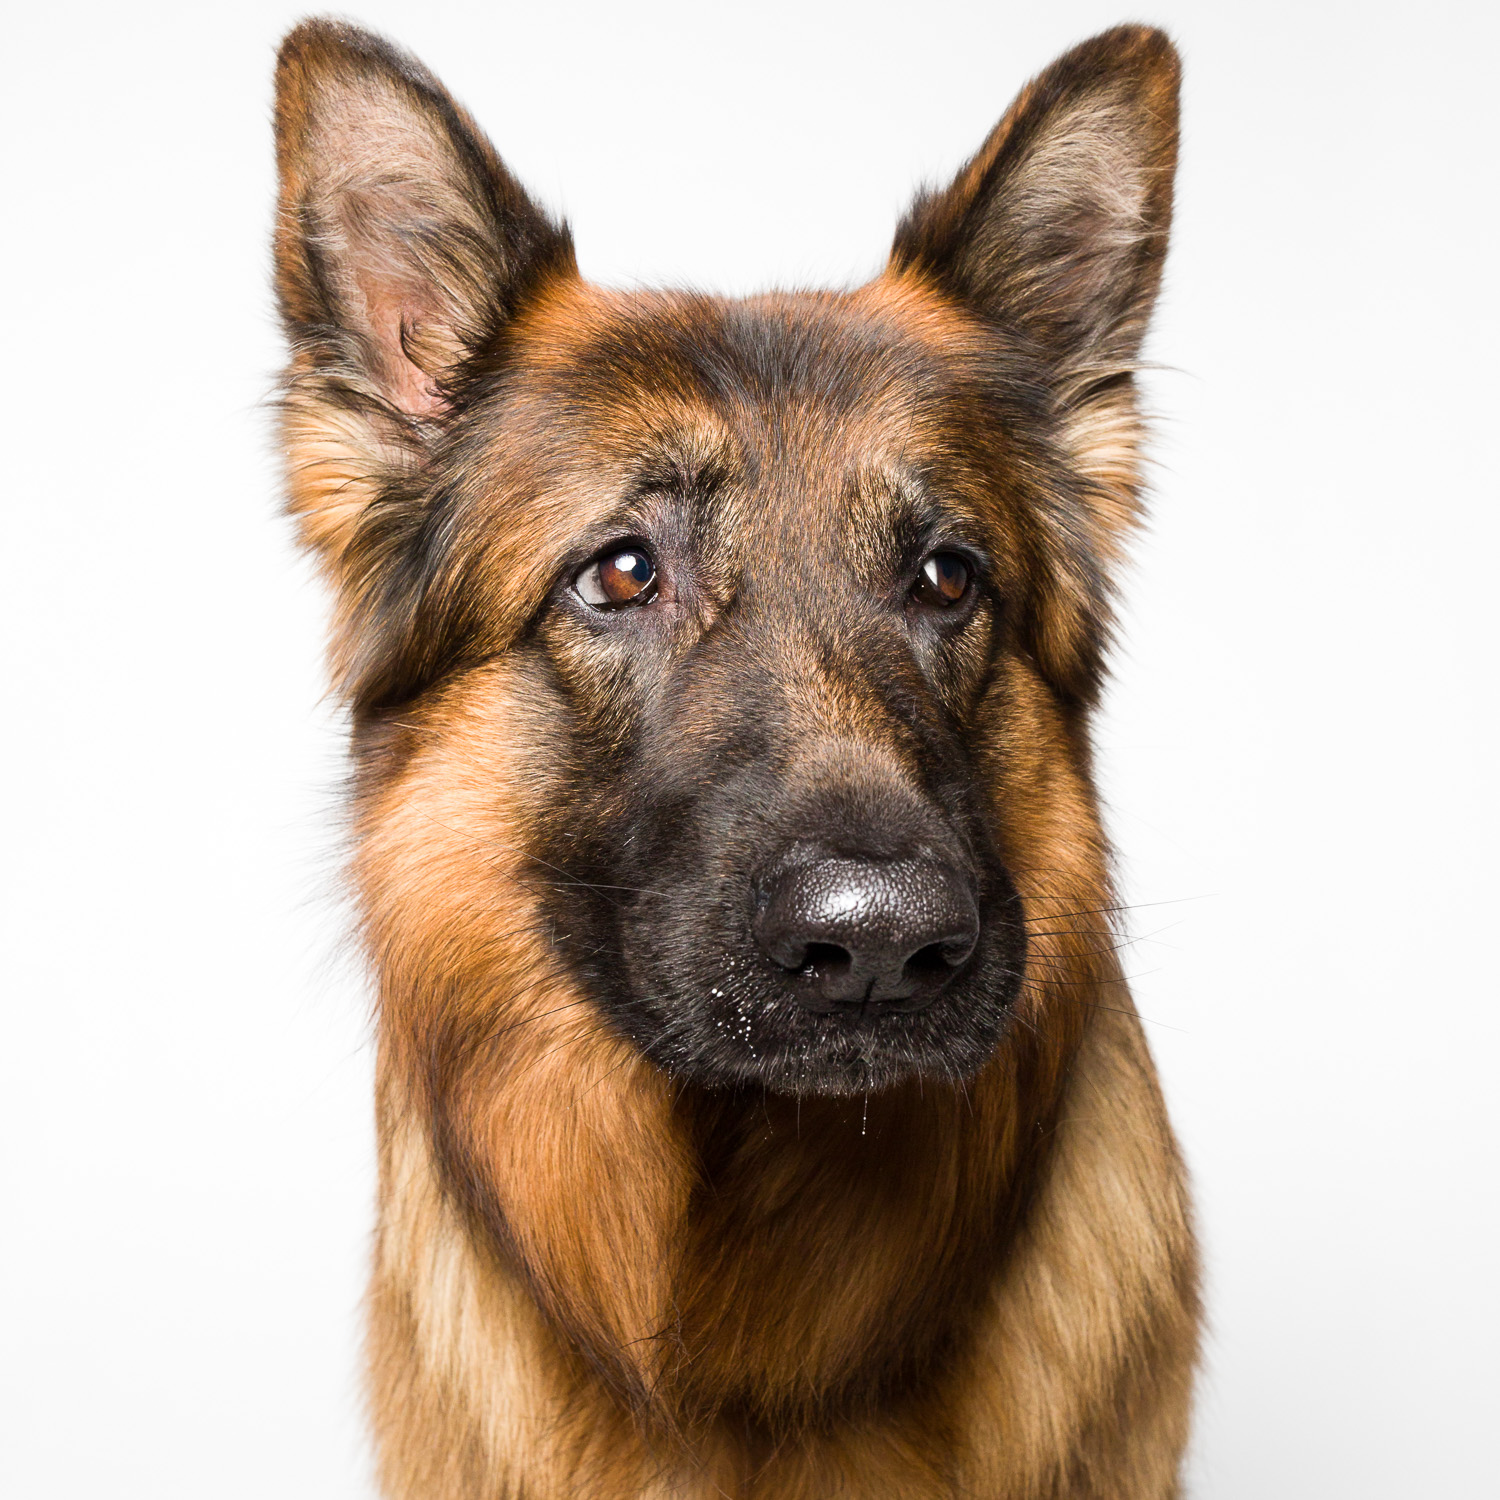 German Shepherd side-eye with AMSTAPHY pet photography